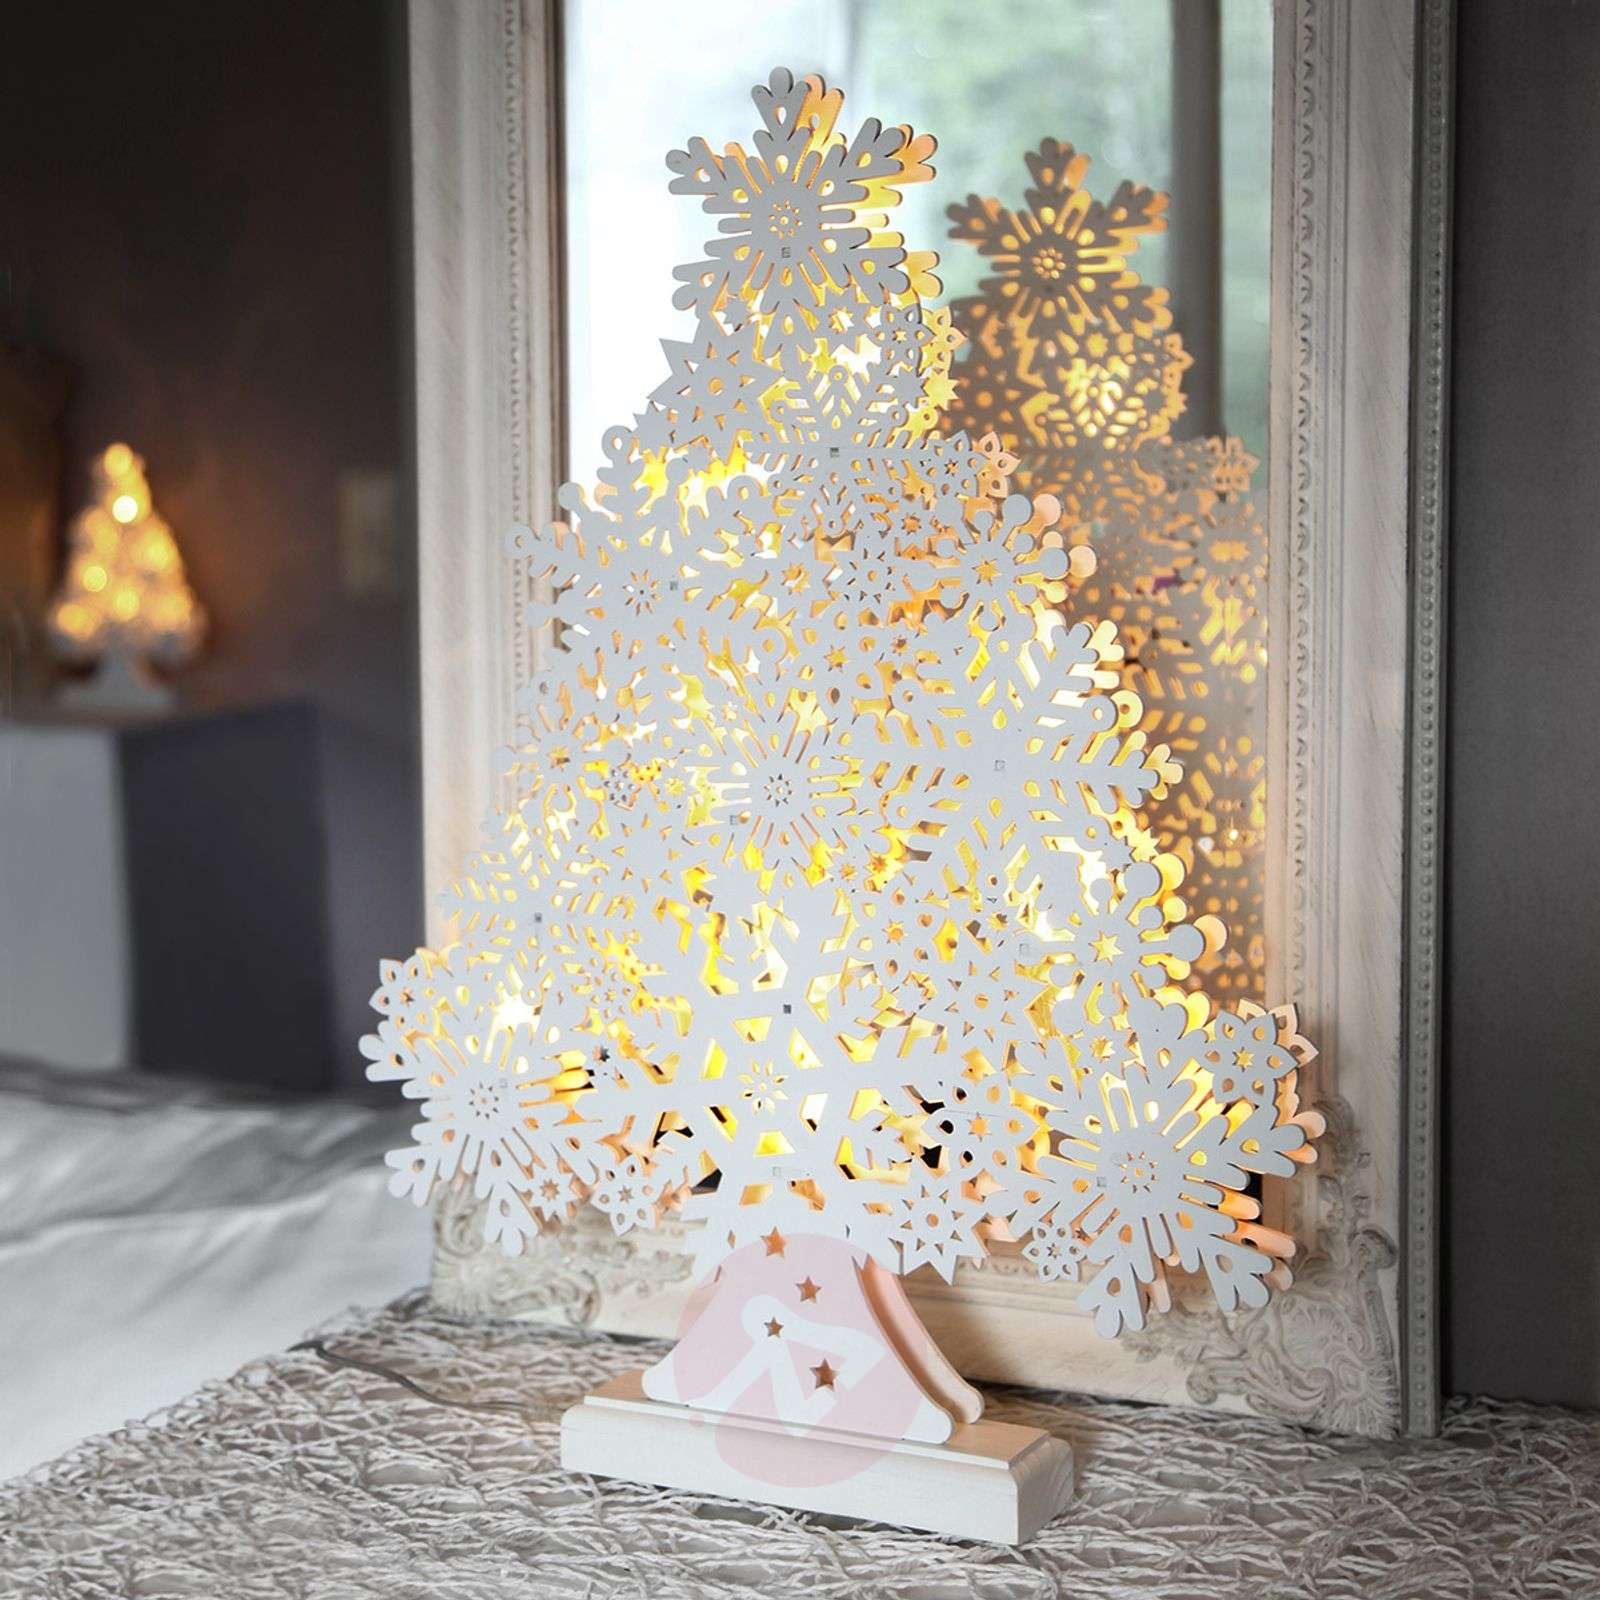 45 cm high LED window candle Winter Tree-1522617-01